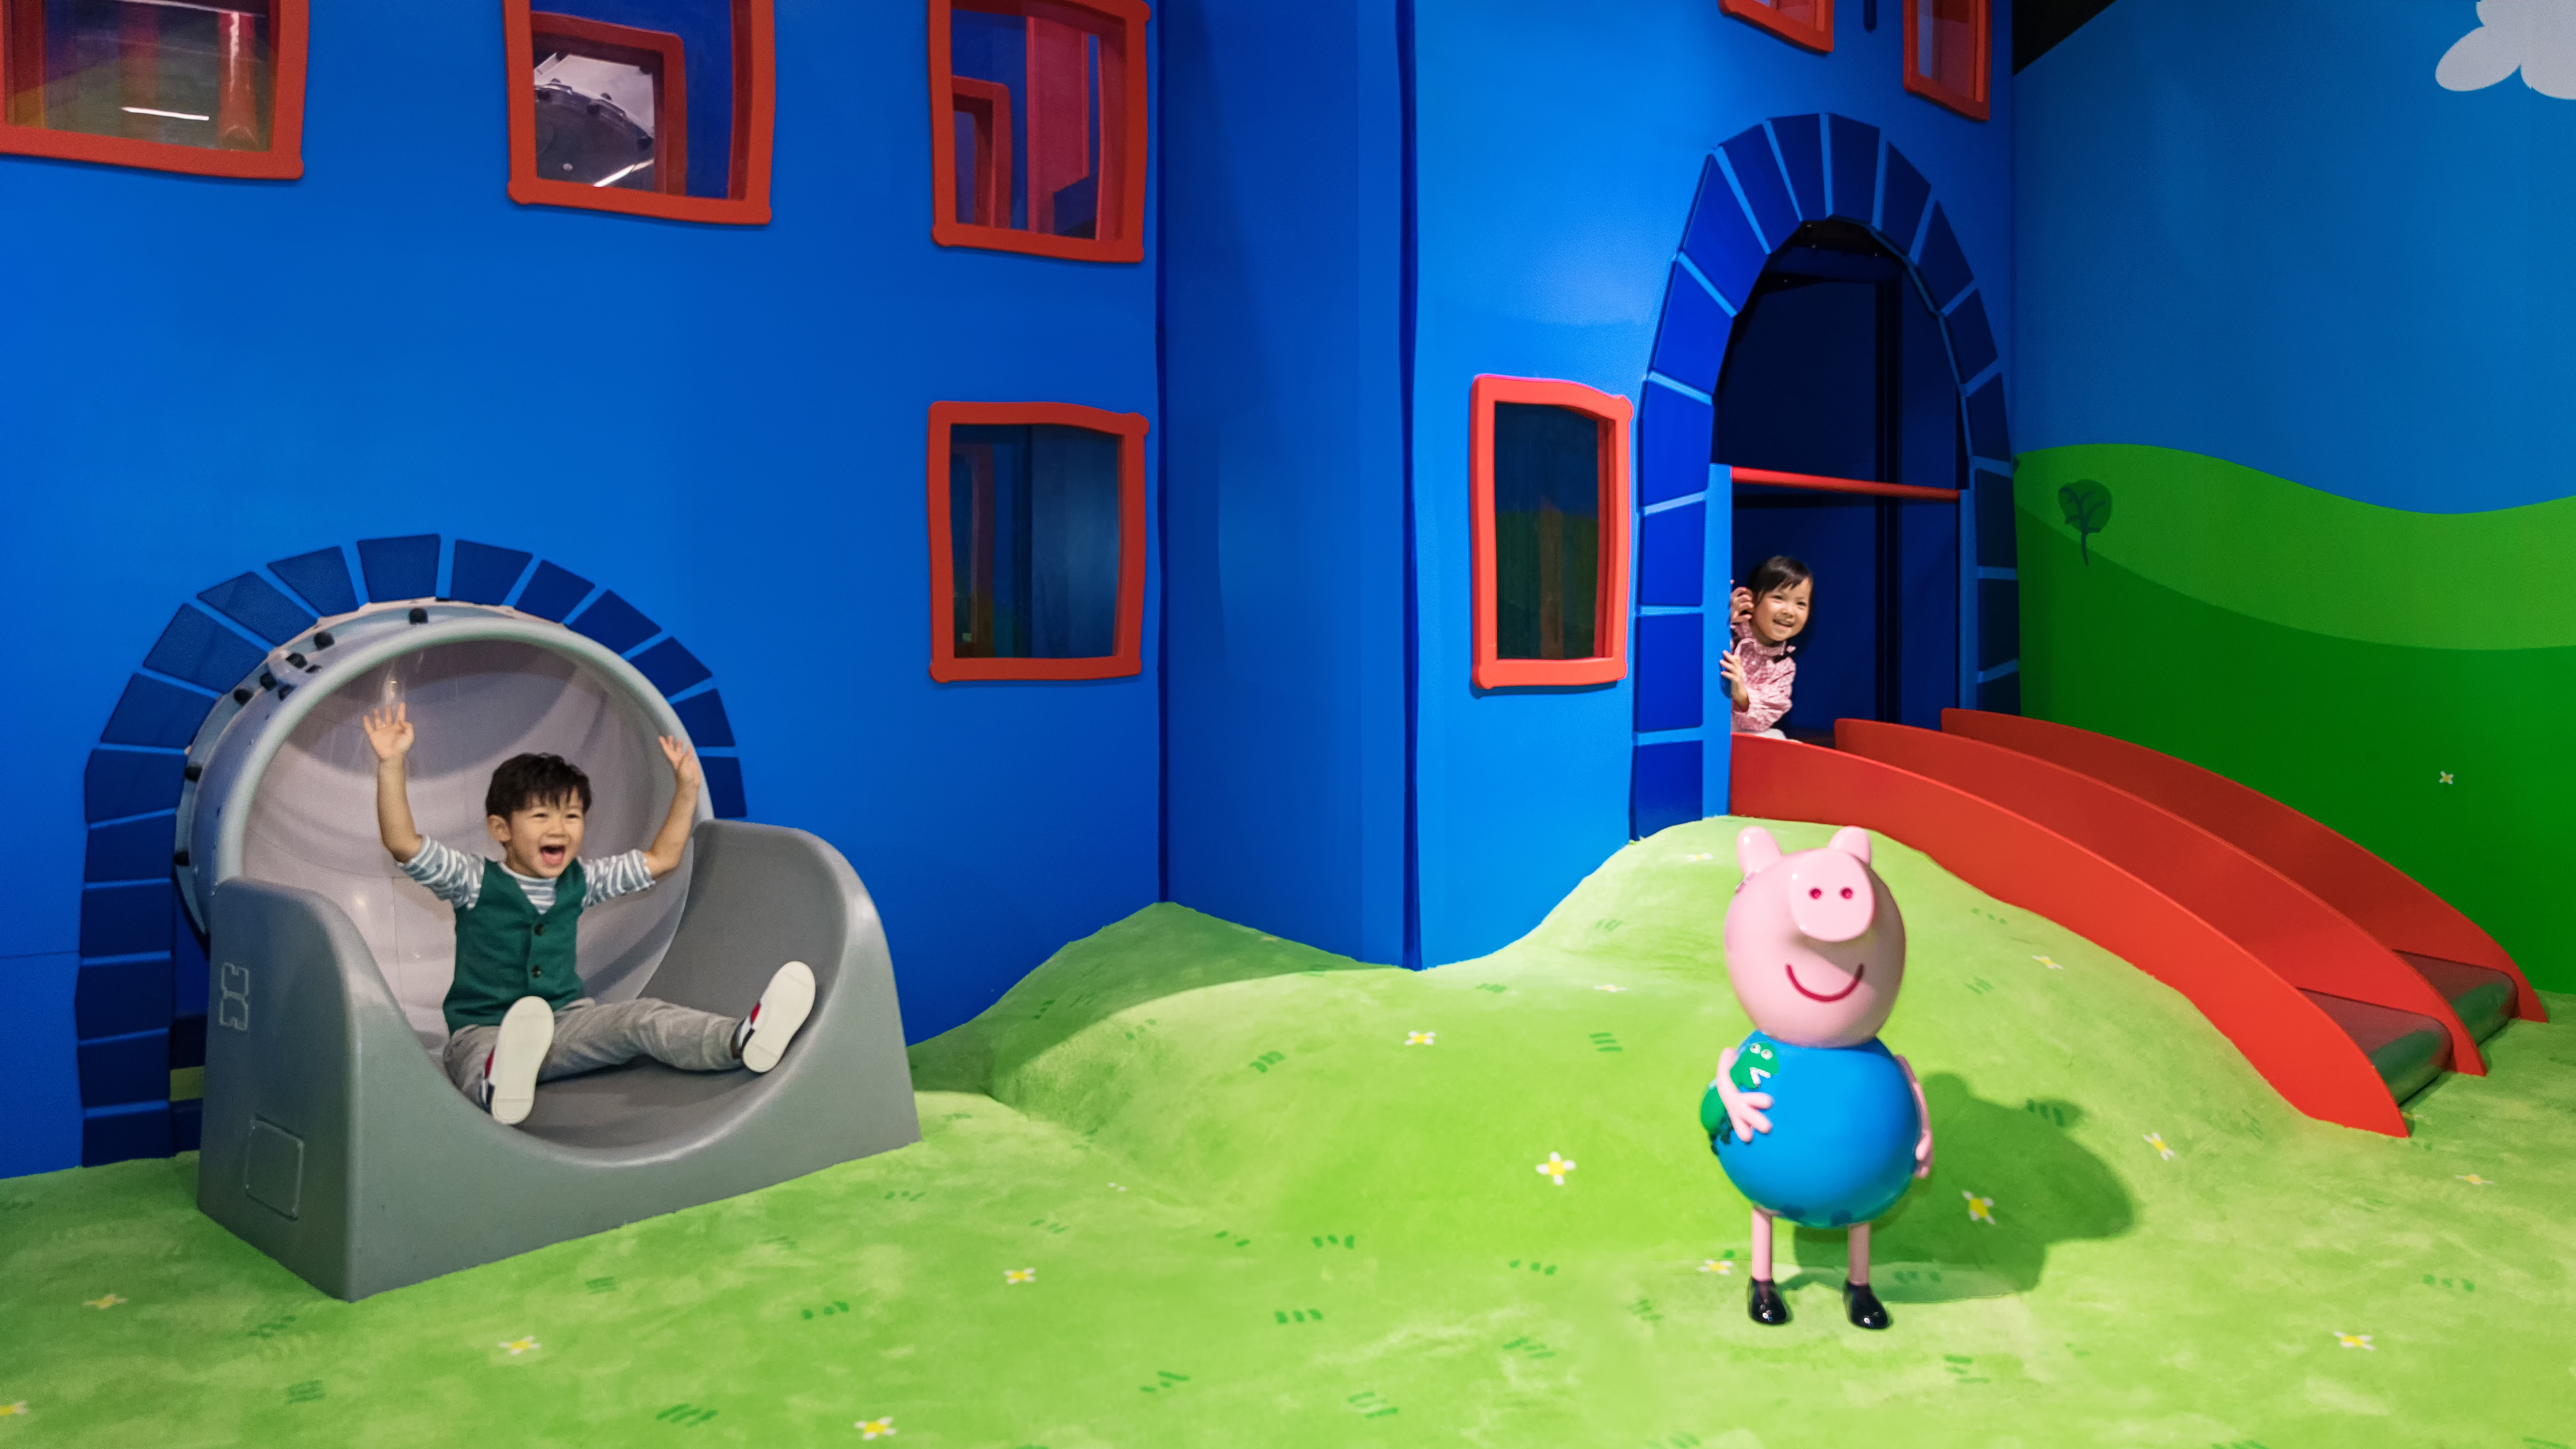 Parents A Permanent Peppa Pig Exhibit Will Pop Up In Grapevine